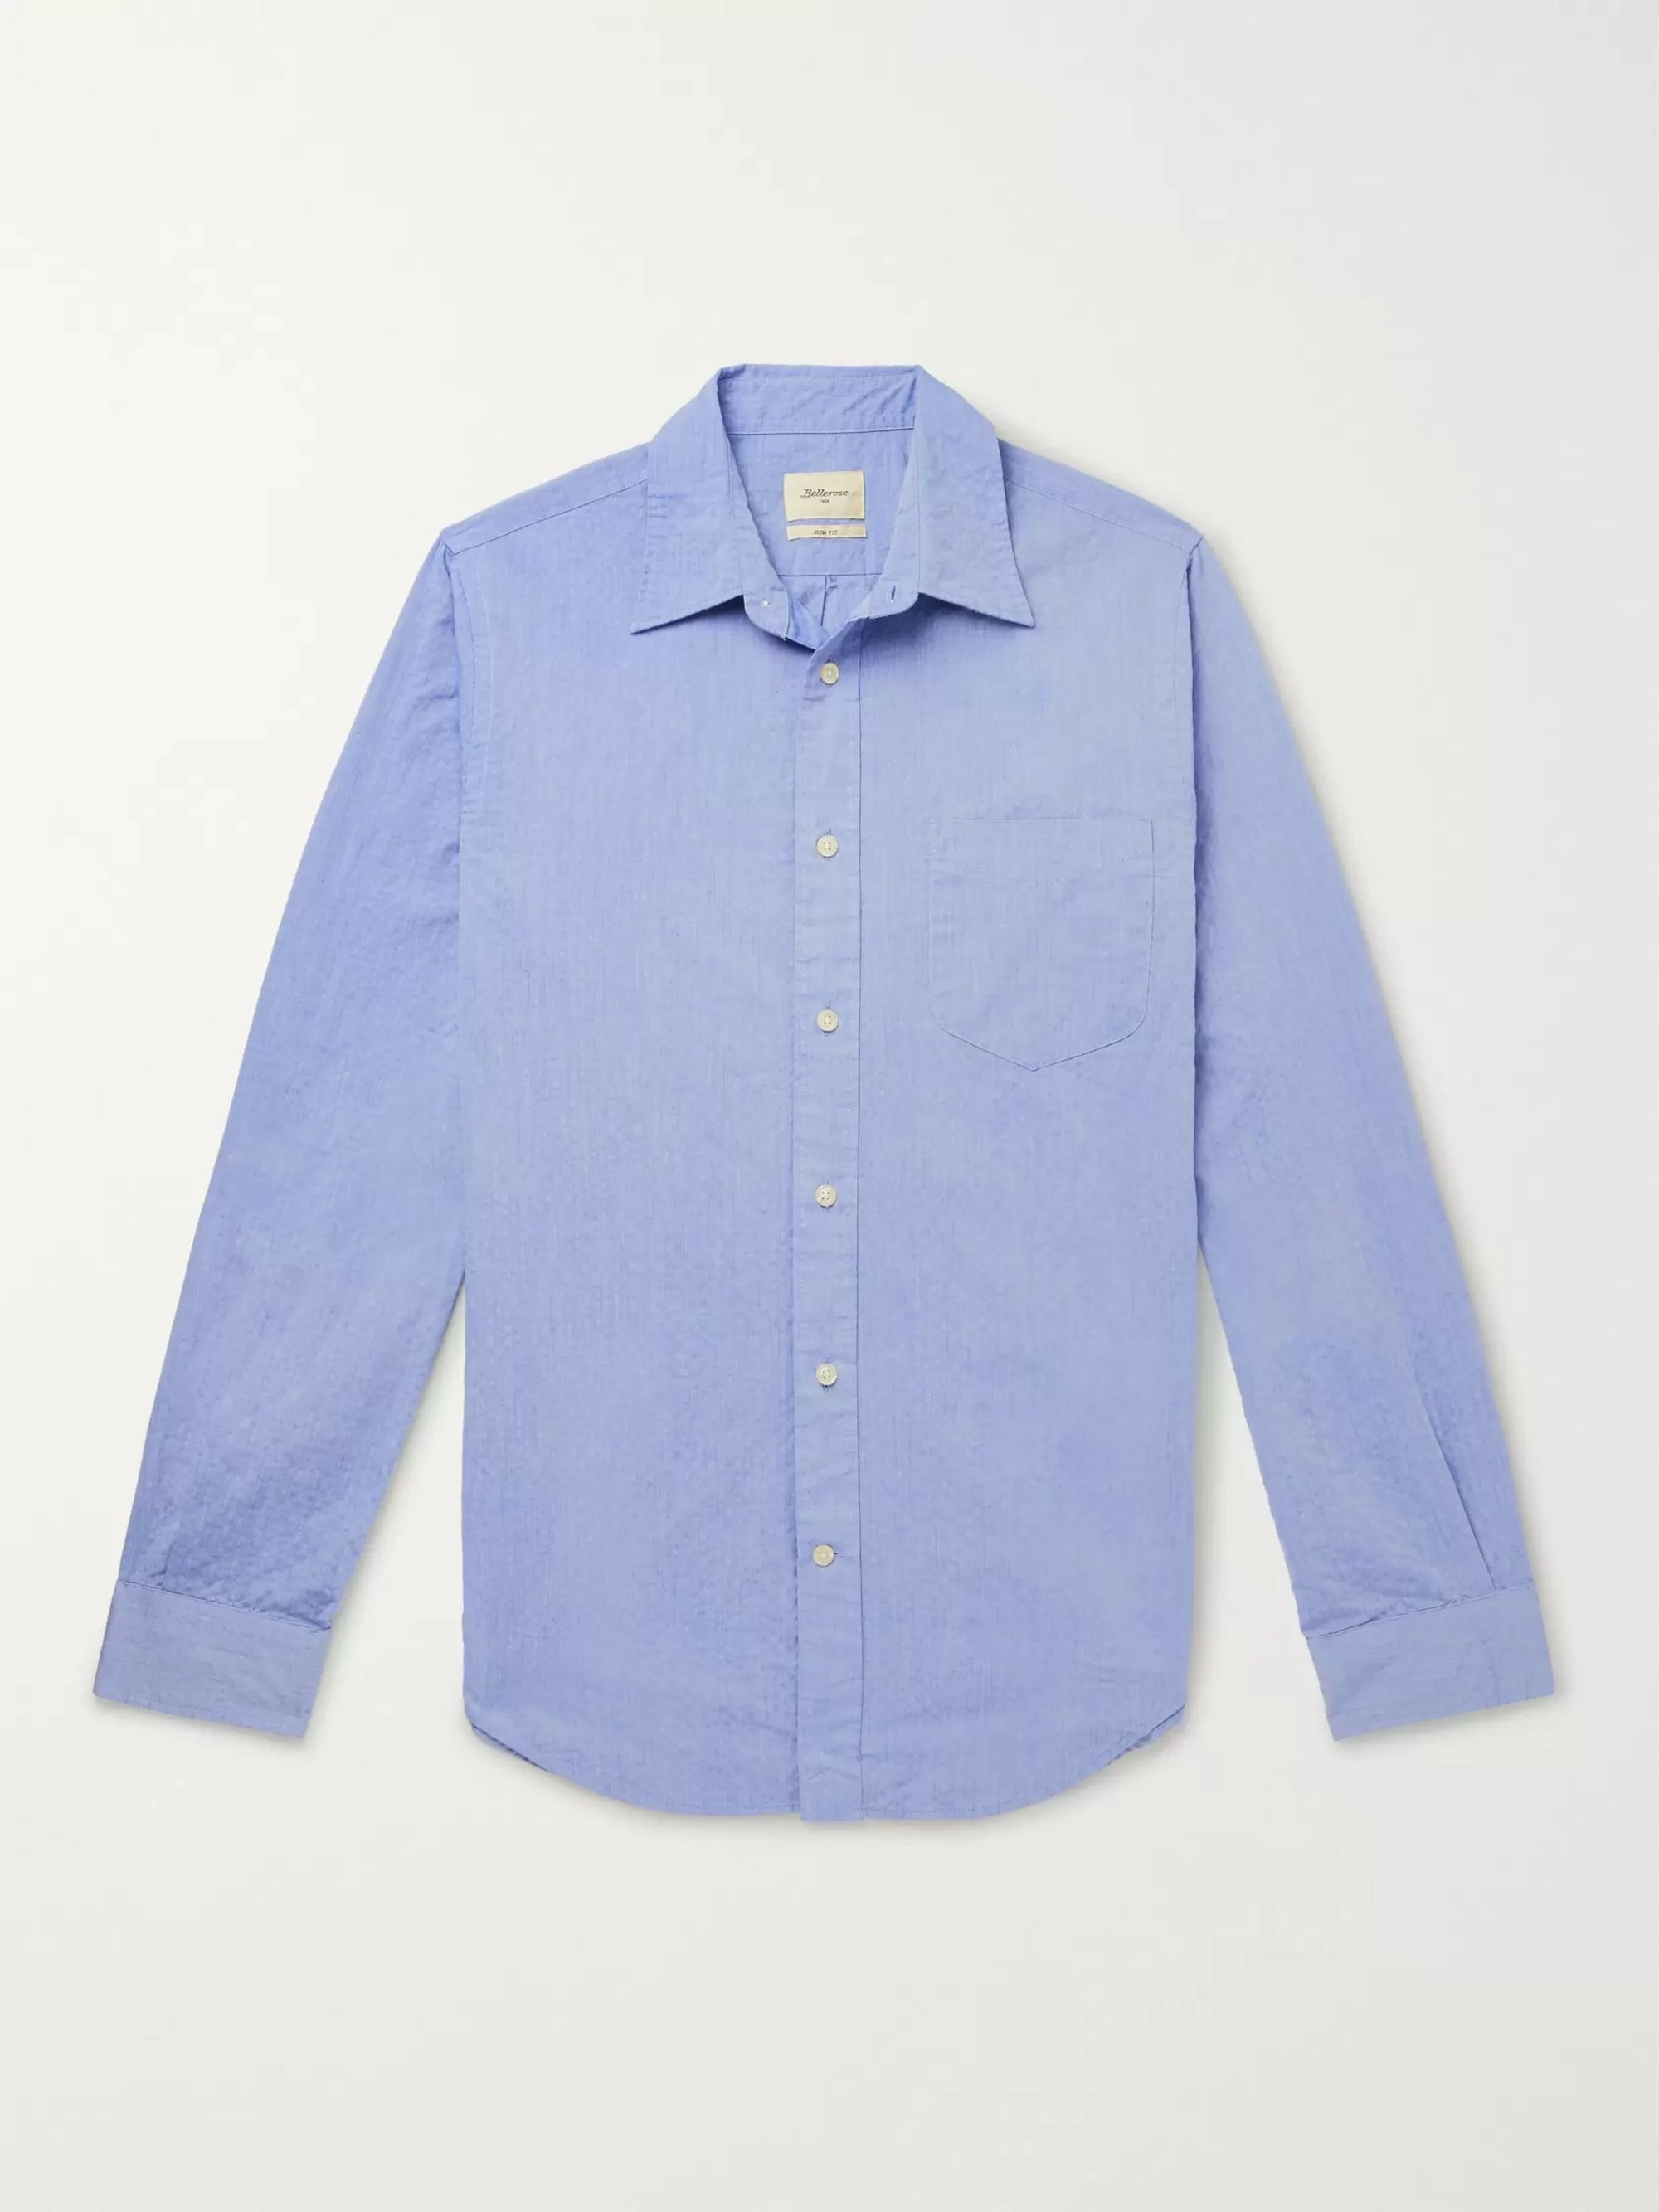 Bellerose Slim-Fit Cotton-Seersucker Shirt